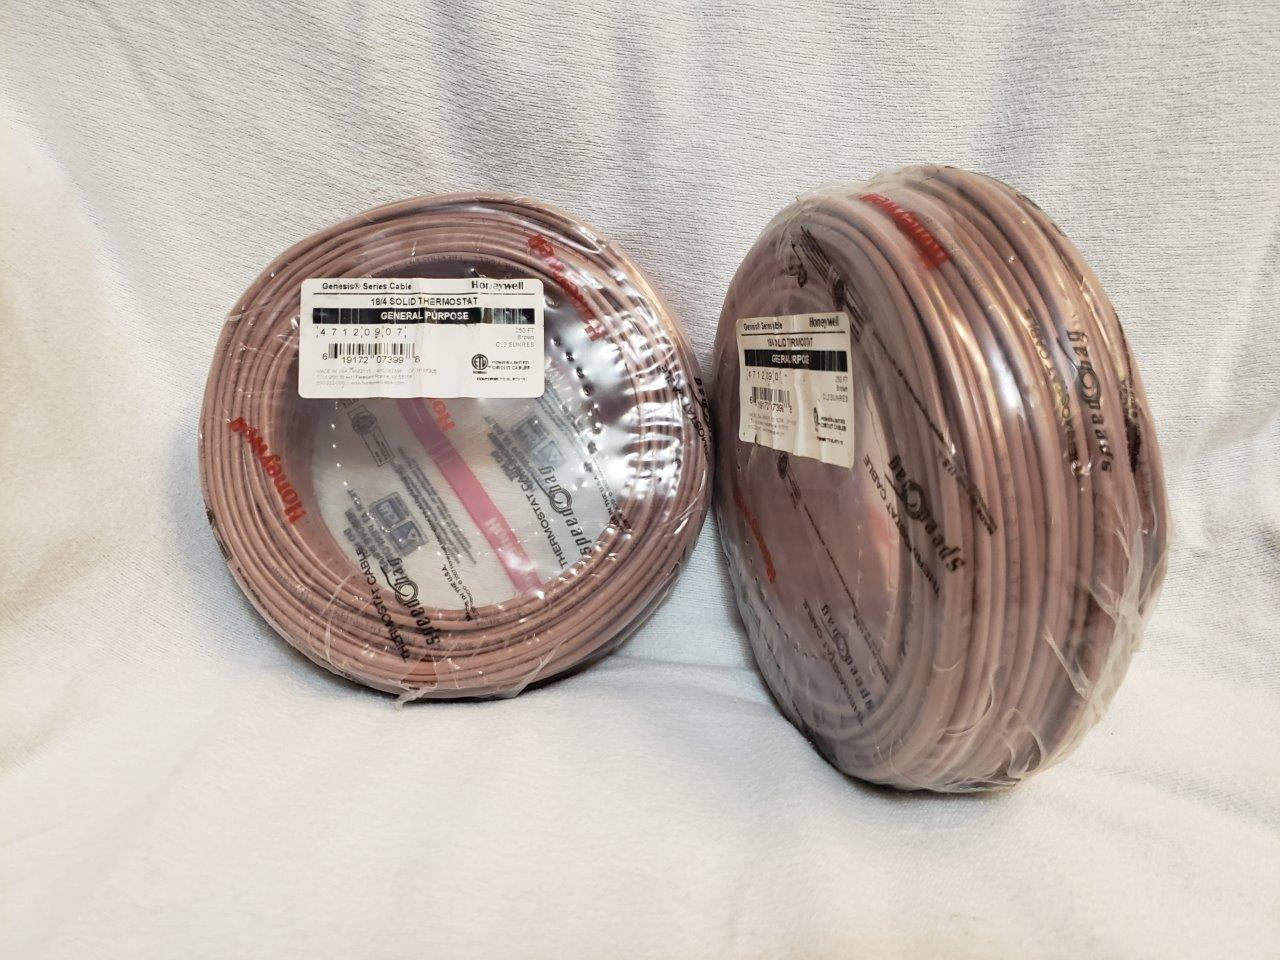 Thermostat wire cable 250ft 18/4 250 ft feet foot Honeywell Genesis 47140907